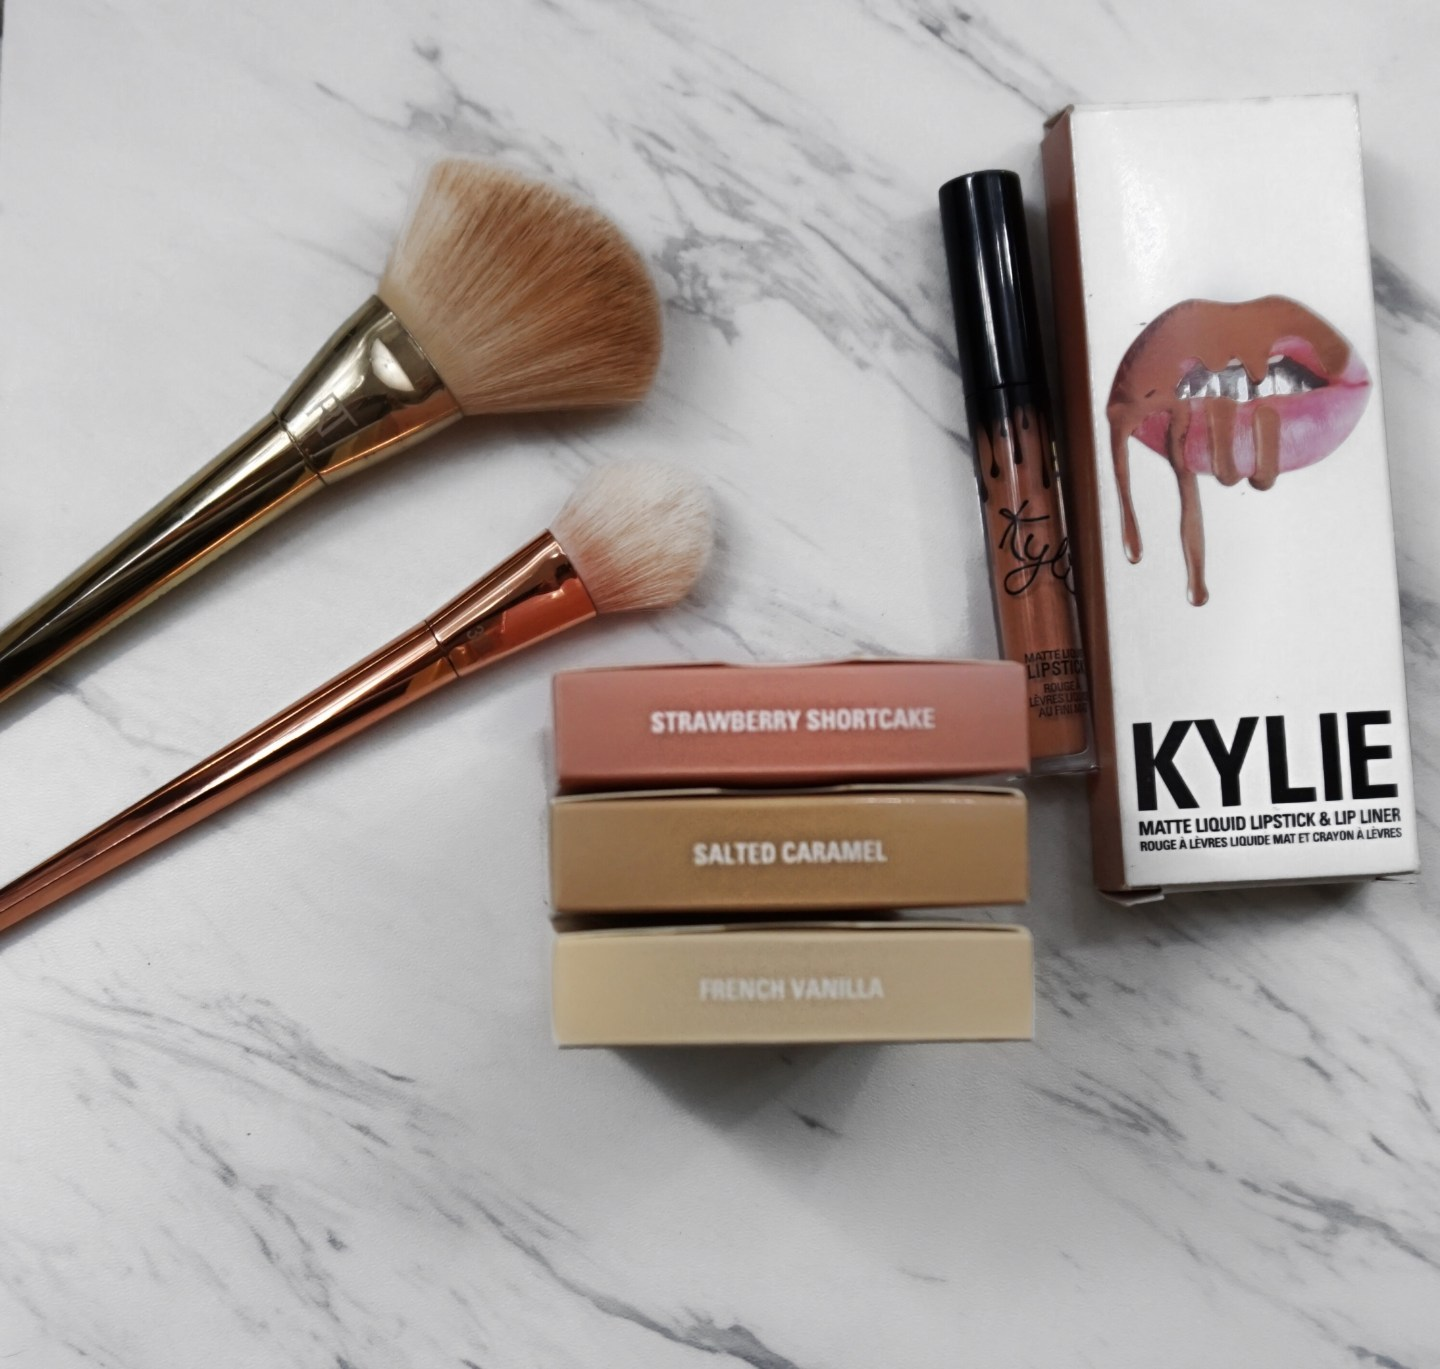 Kylie Kylighter Review & Giveaway